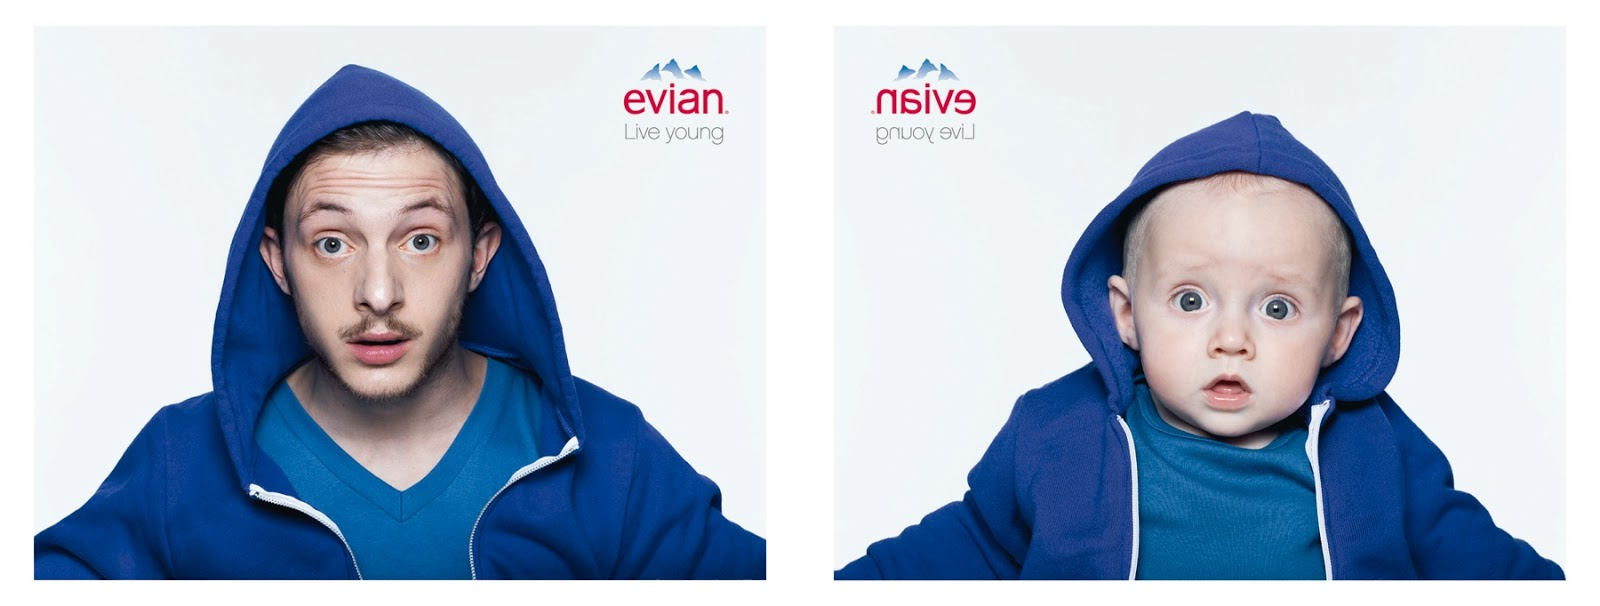 a18edb596 Evian Live Young - Baby and Me